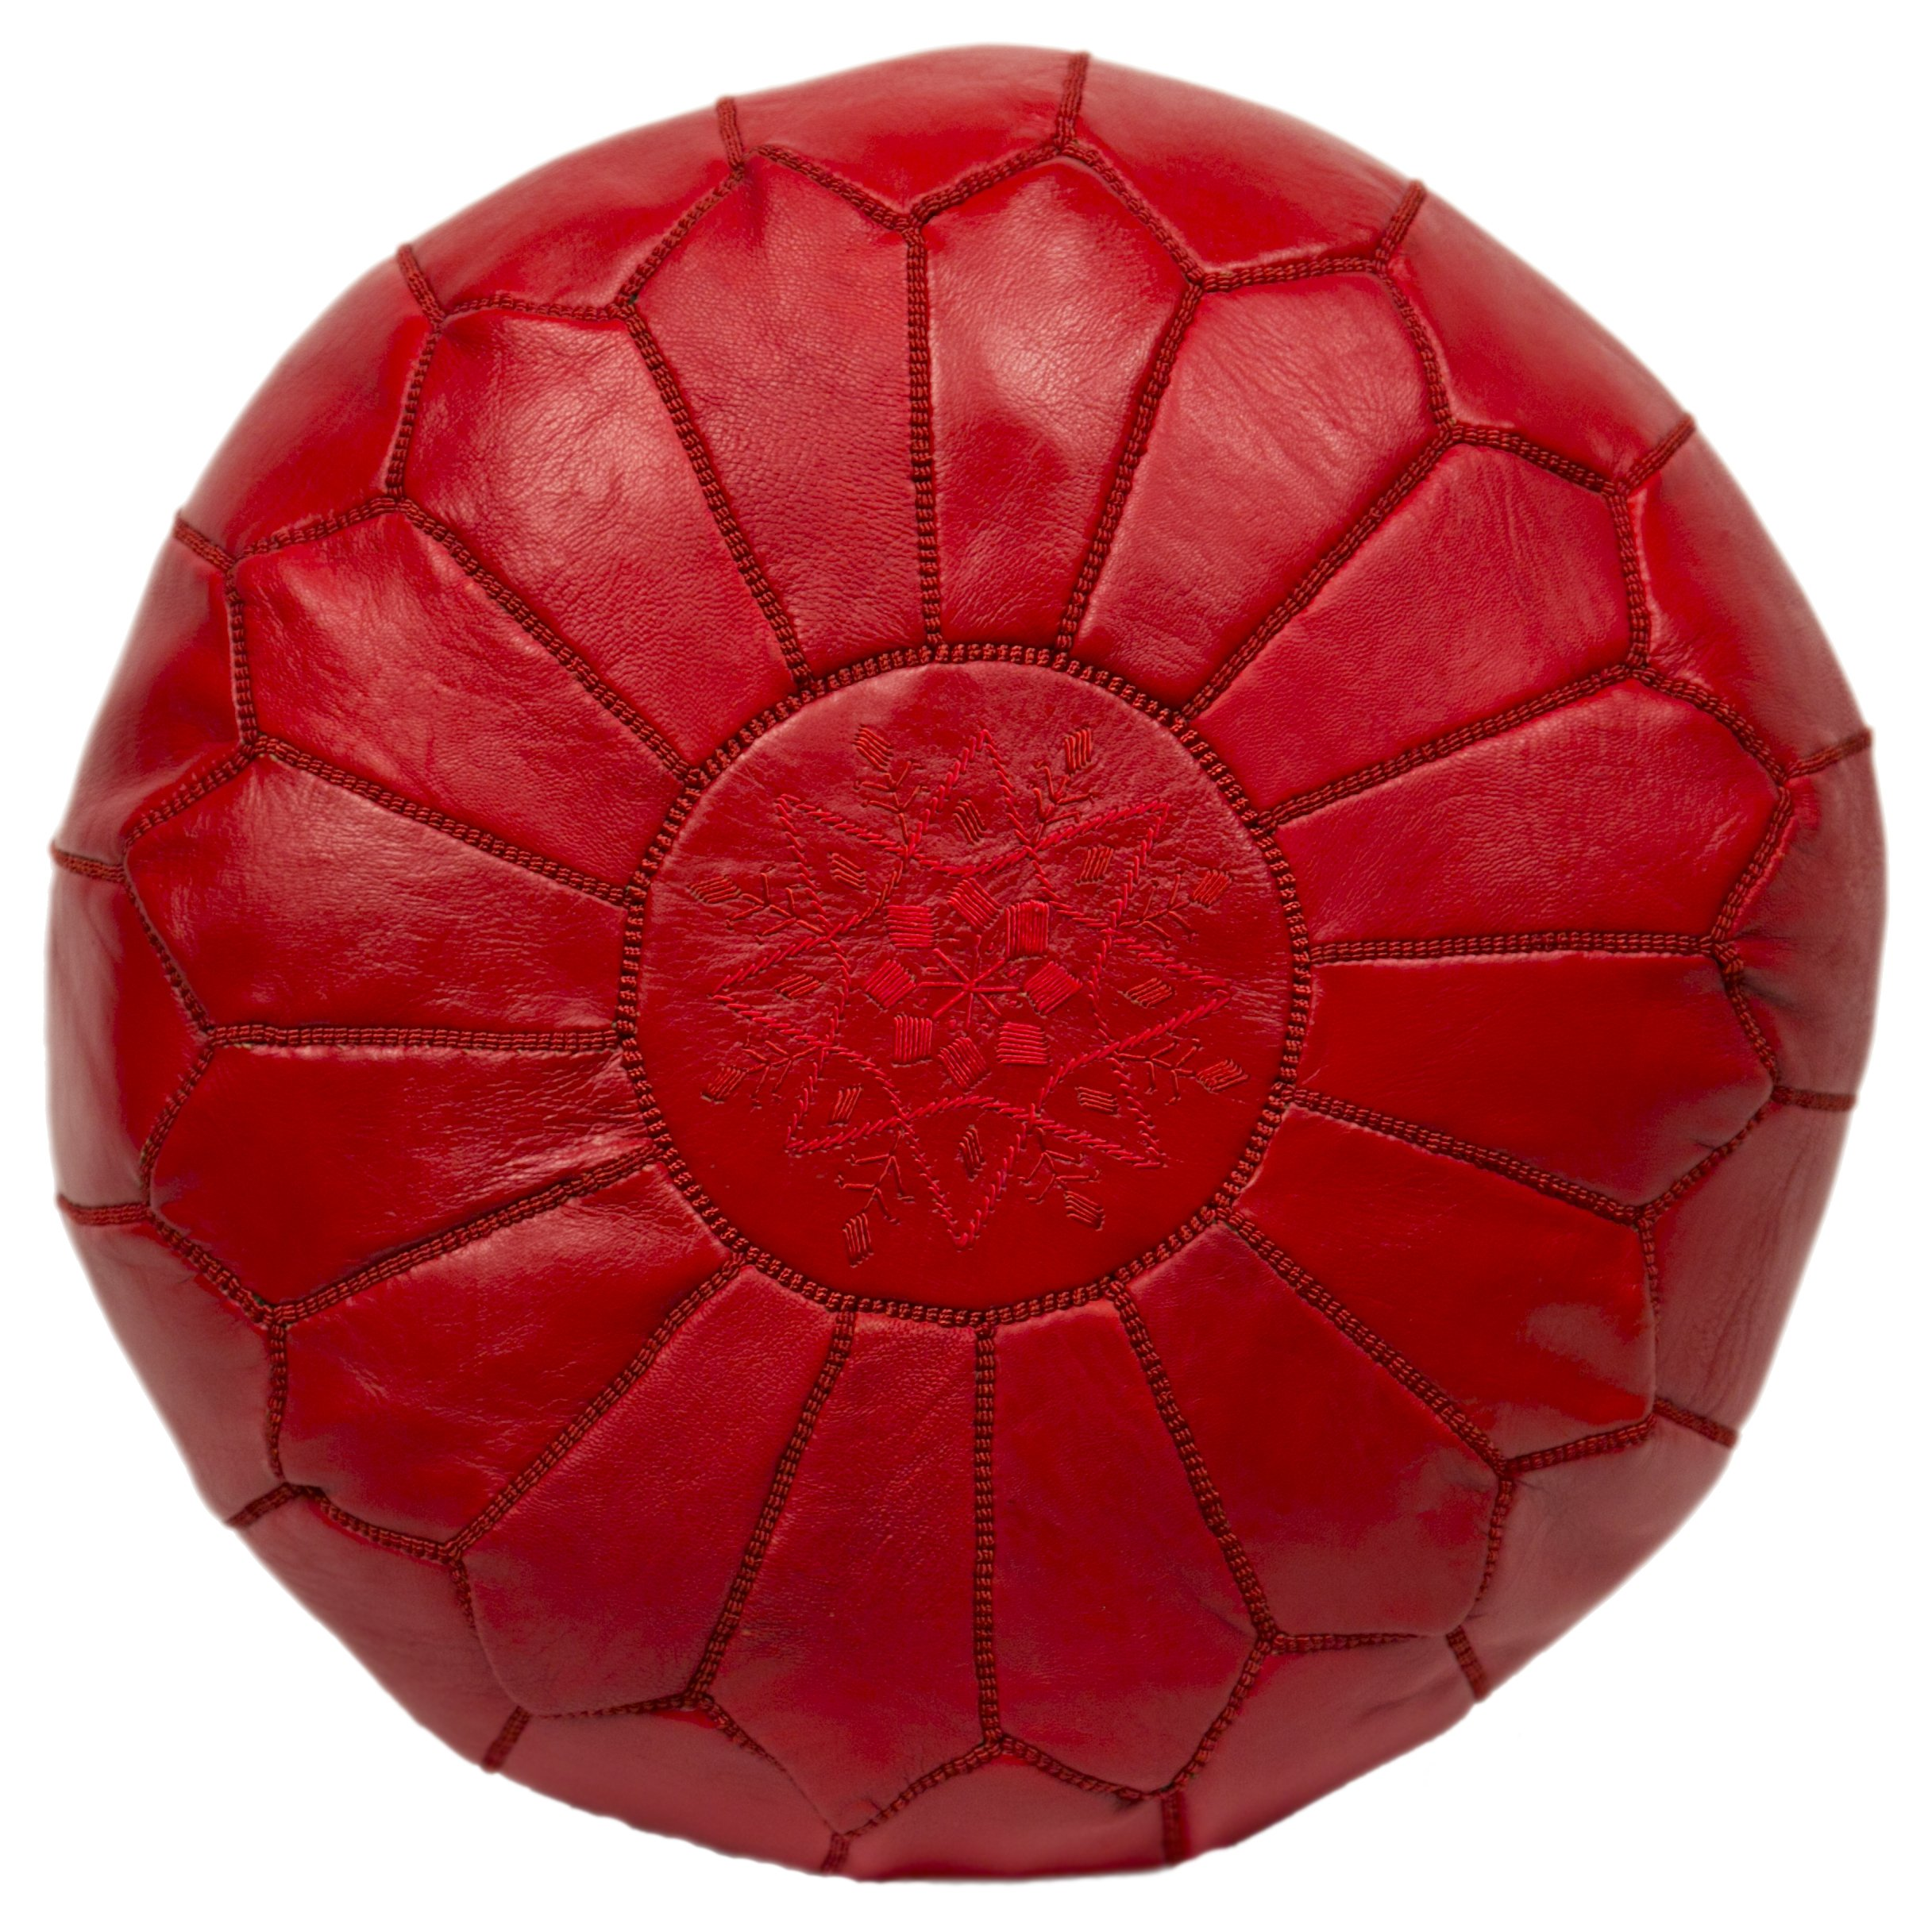 Casablanca Market Moroccan Embroidered Cotton Stuffed Leather Pouf/Ottoman, Red